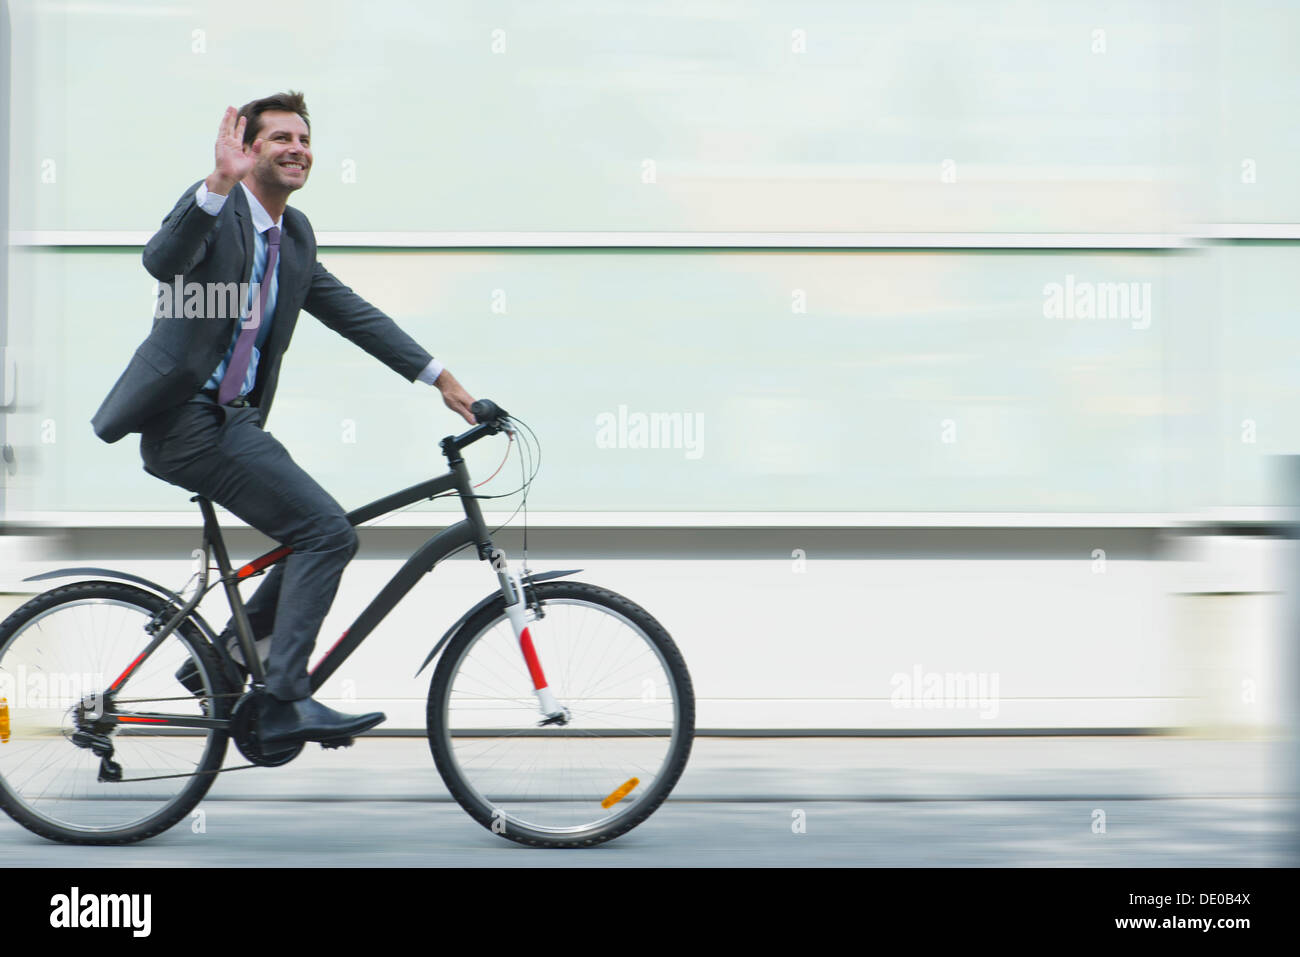 Businessman riding bicycle - Stock Image